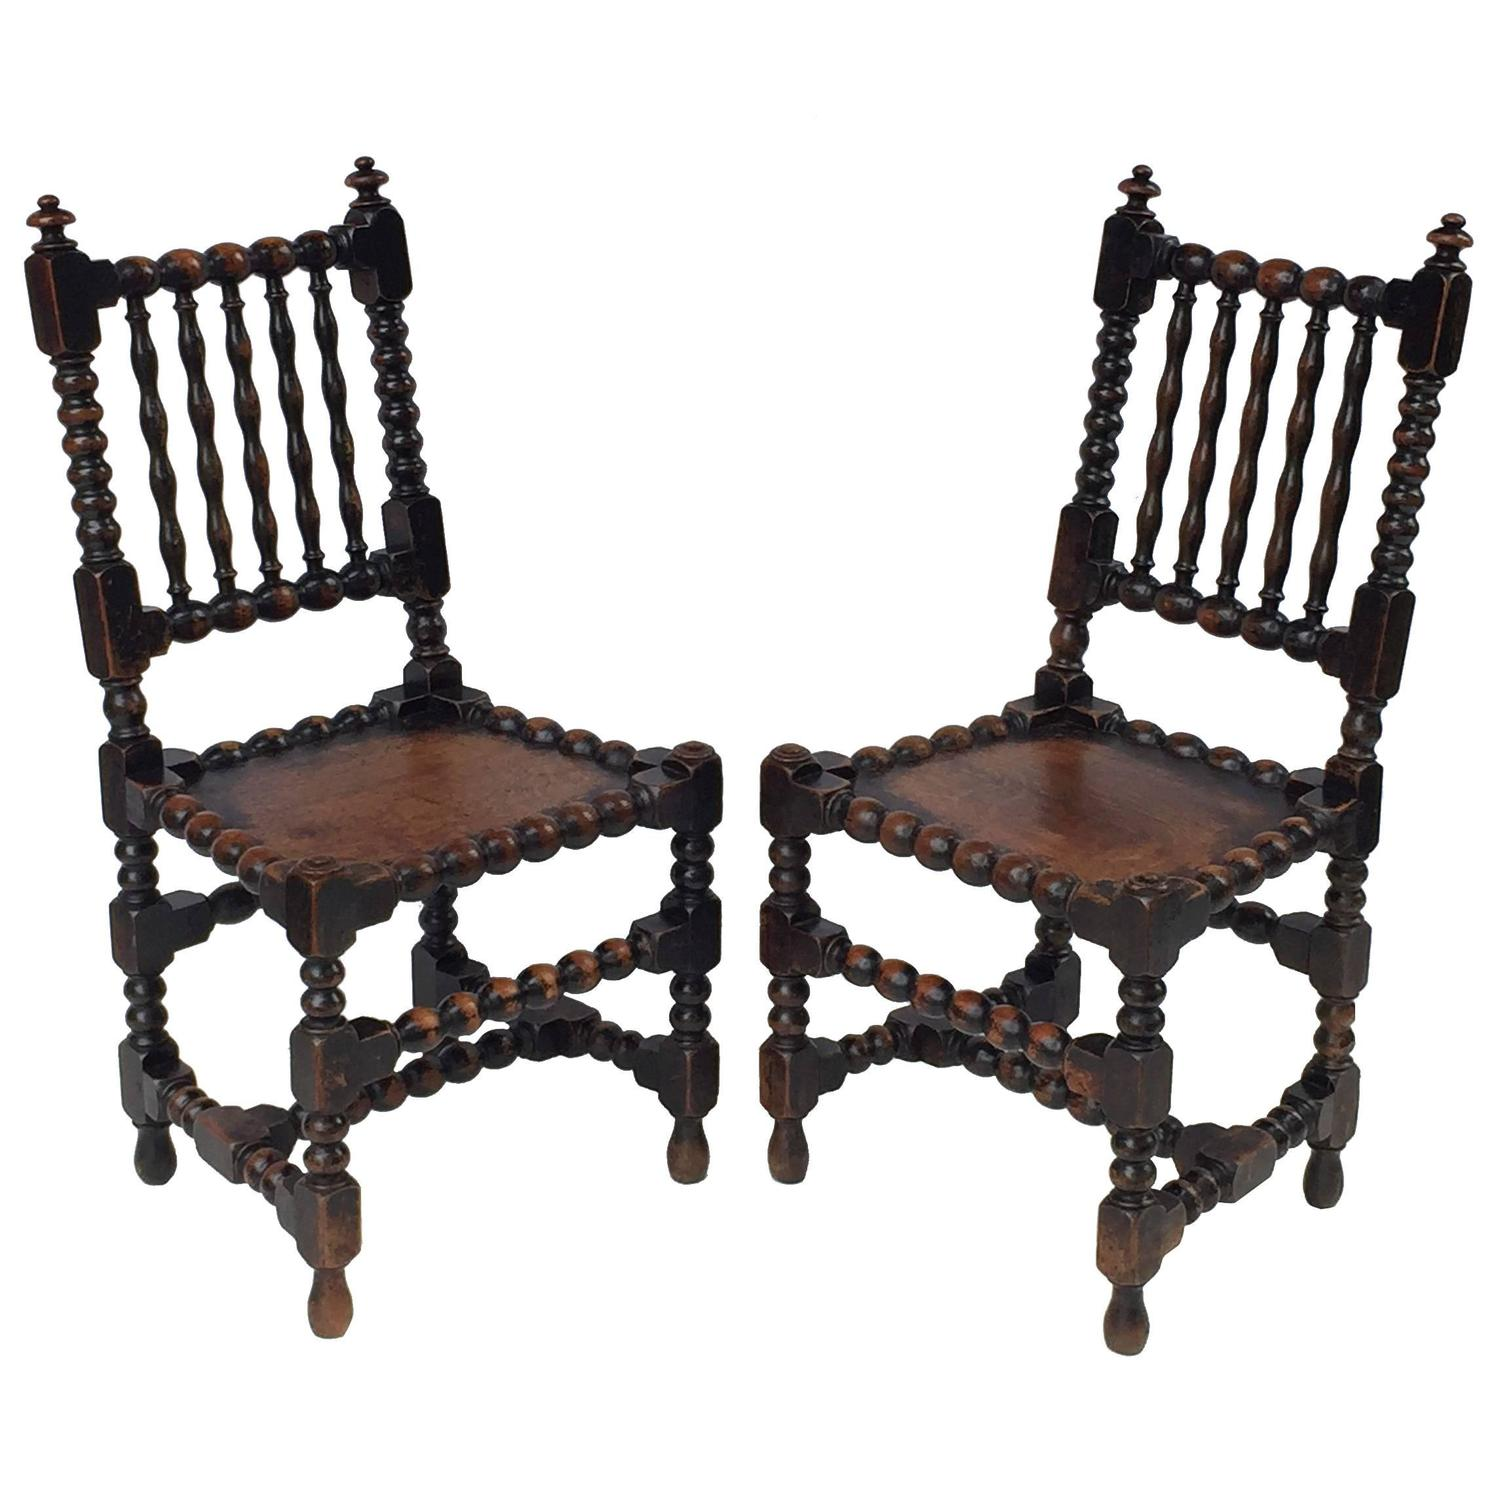 English Bobbin Chairs from the Georgian Era For Sale at